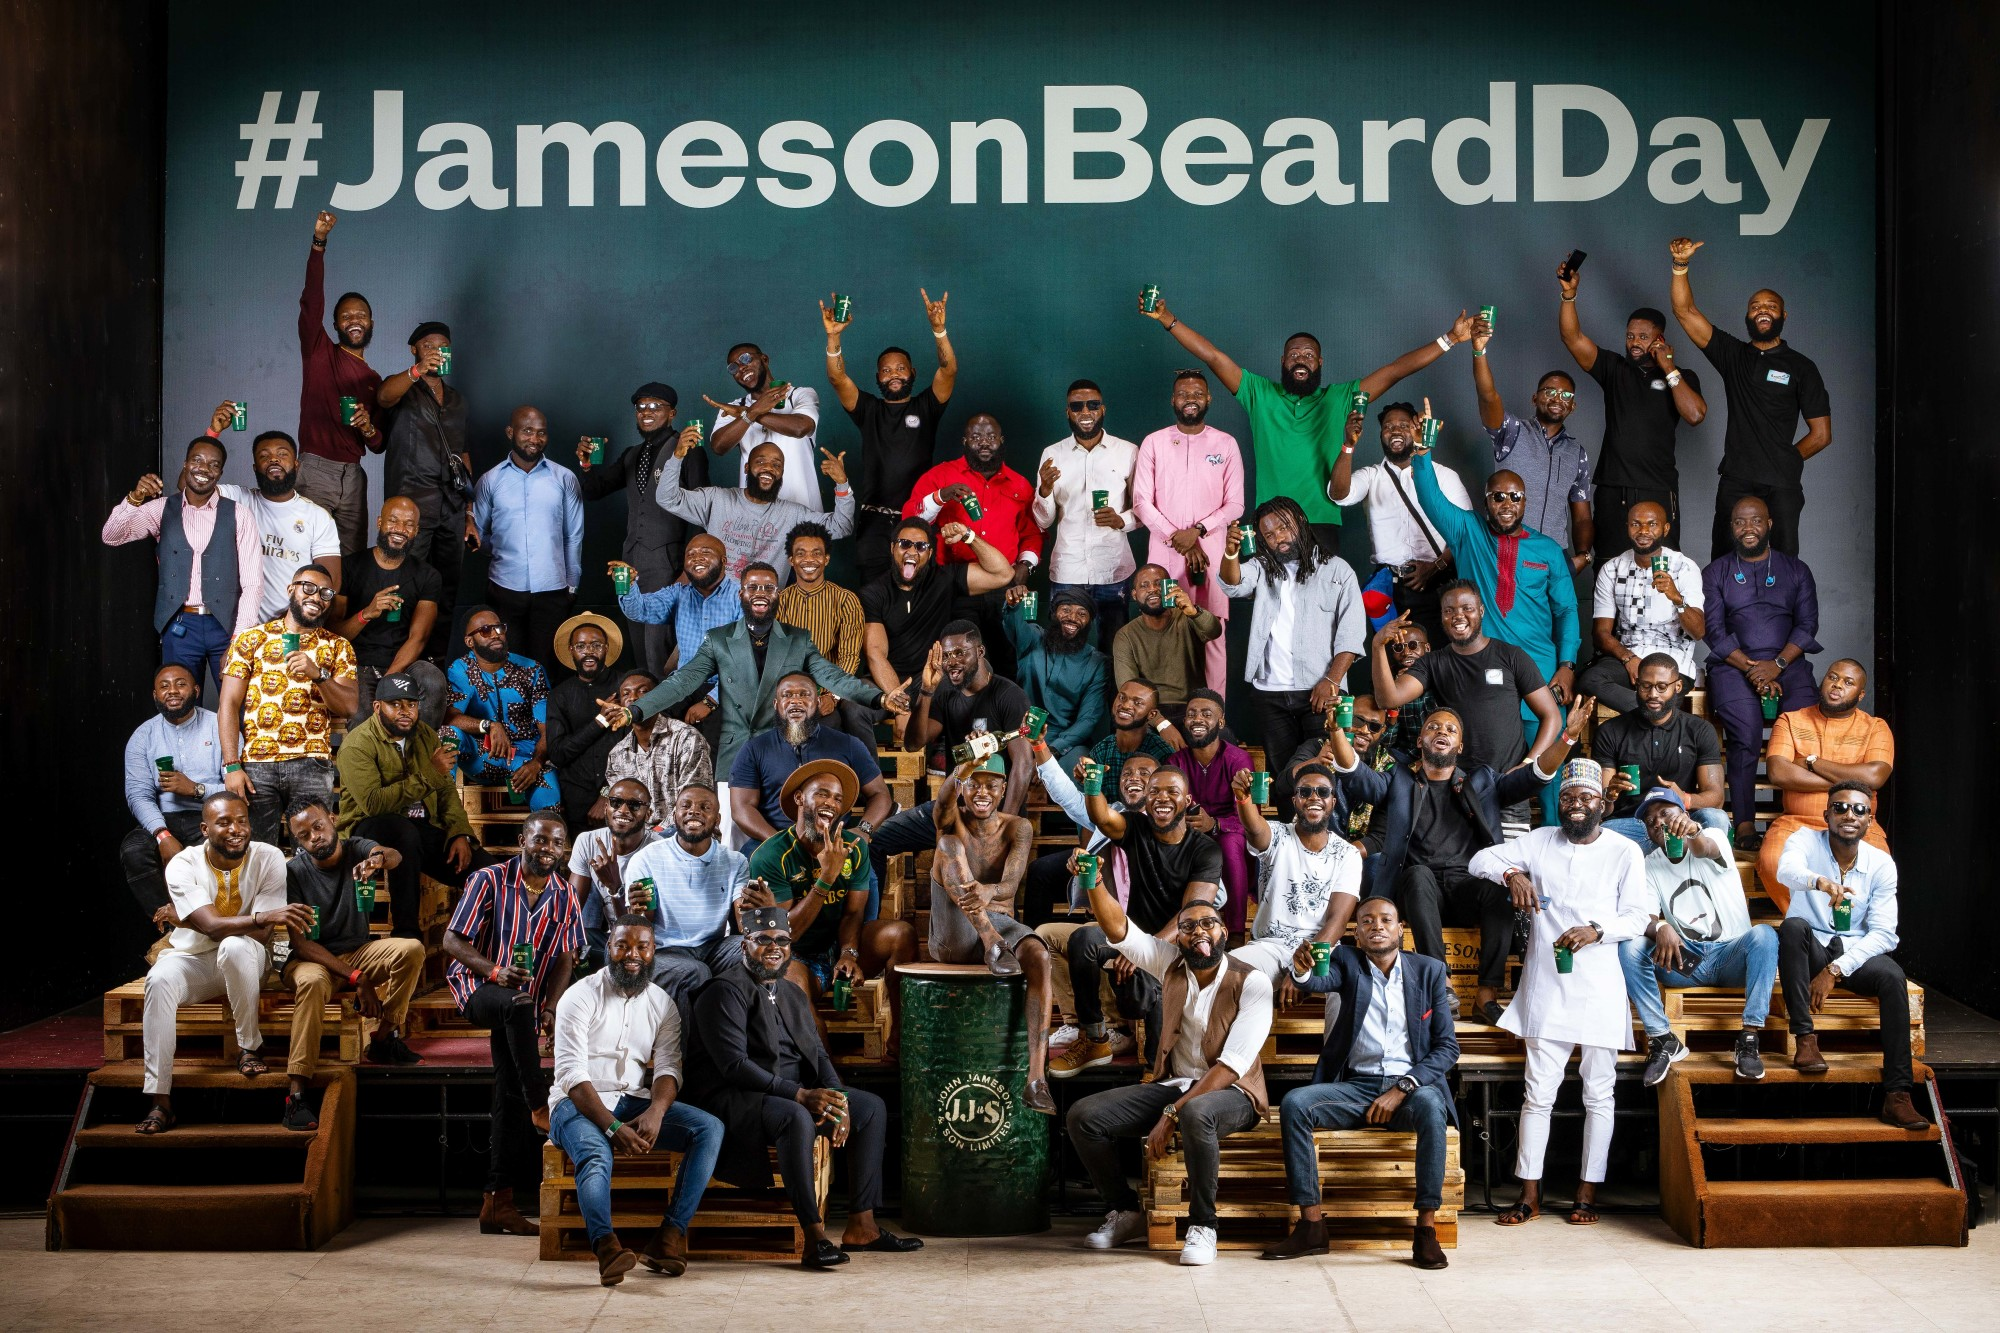 Group of Bearded Men and brothers for Jameson World Beard Day campaign